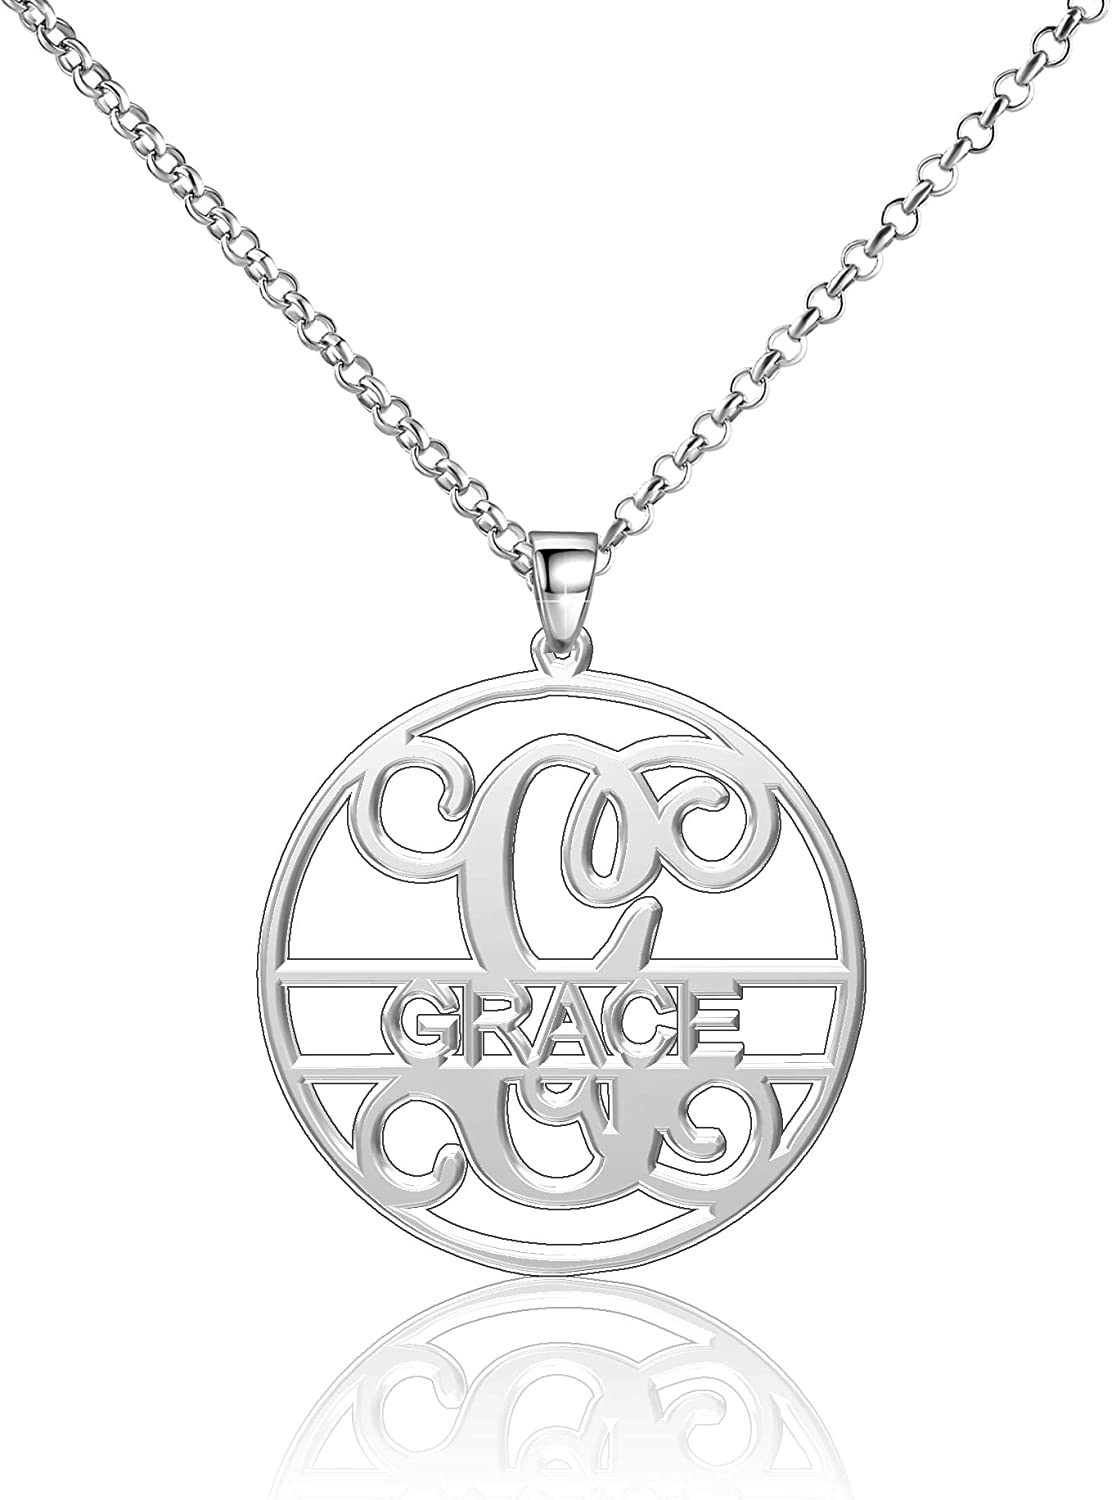 Moonlight Collections Grace Necklace Initial Necklace for Women Custom Nameplate Personalized Gift